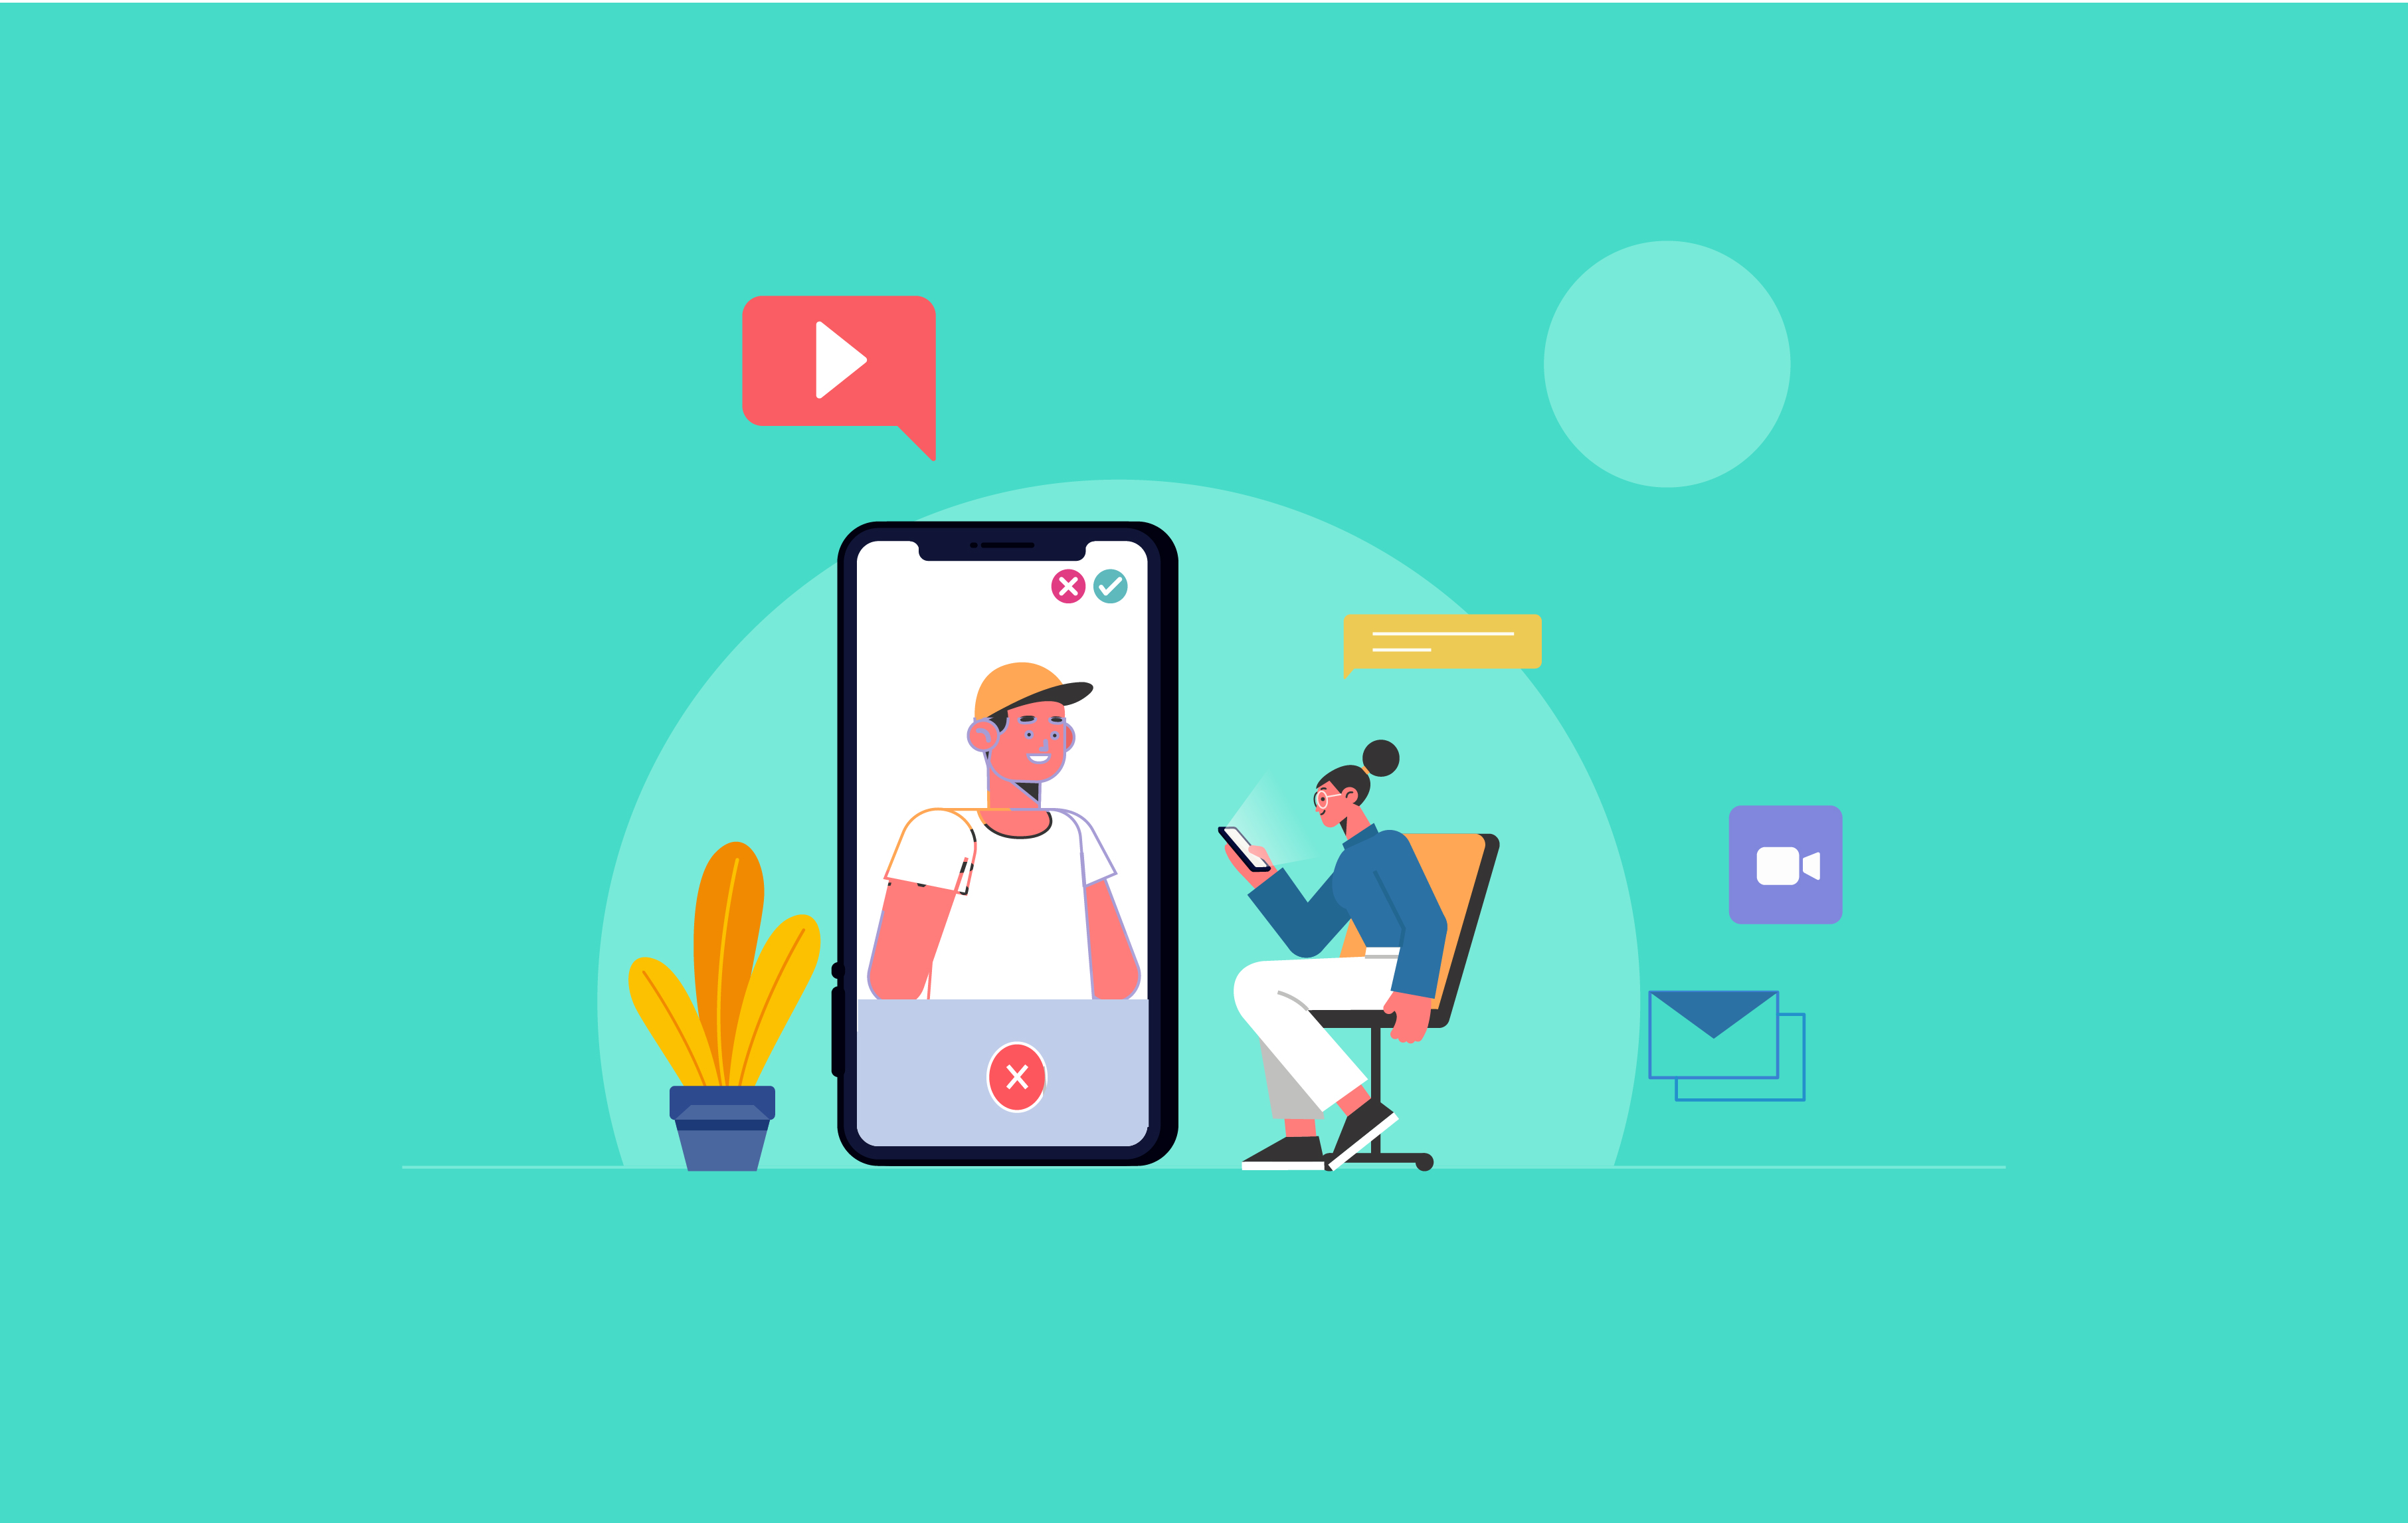 List of Best 10 Video Chat Apps for Android [2021]